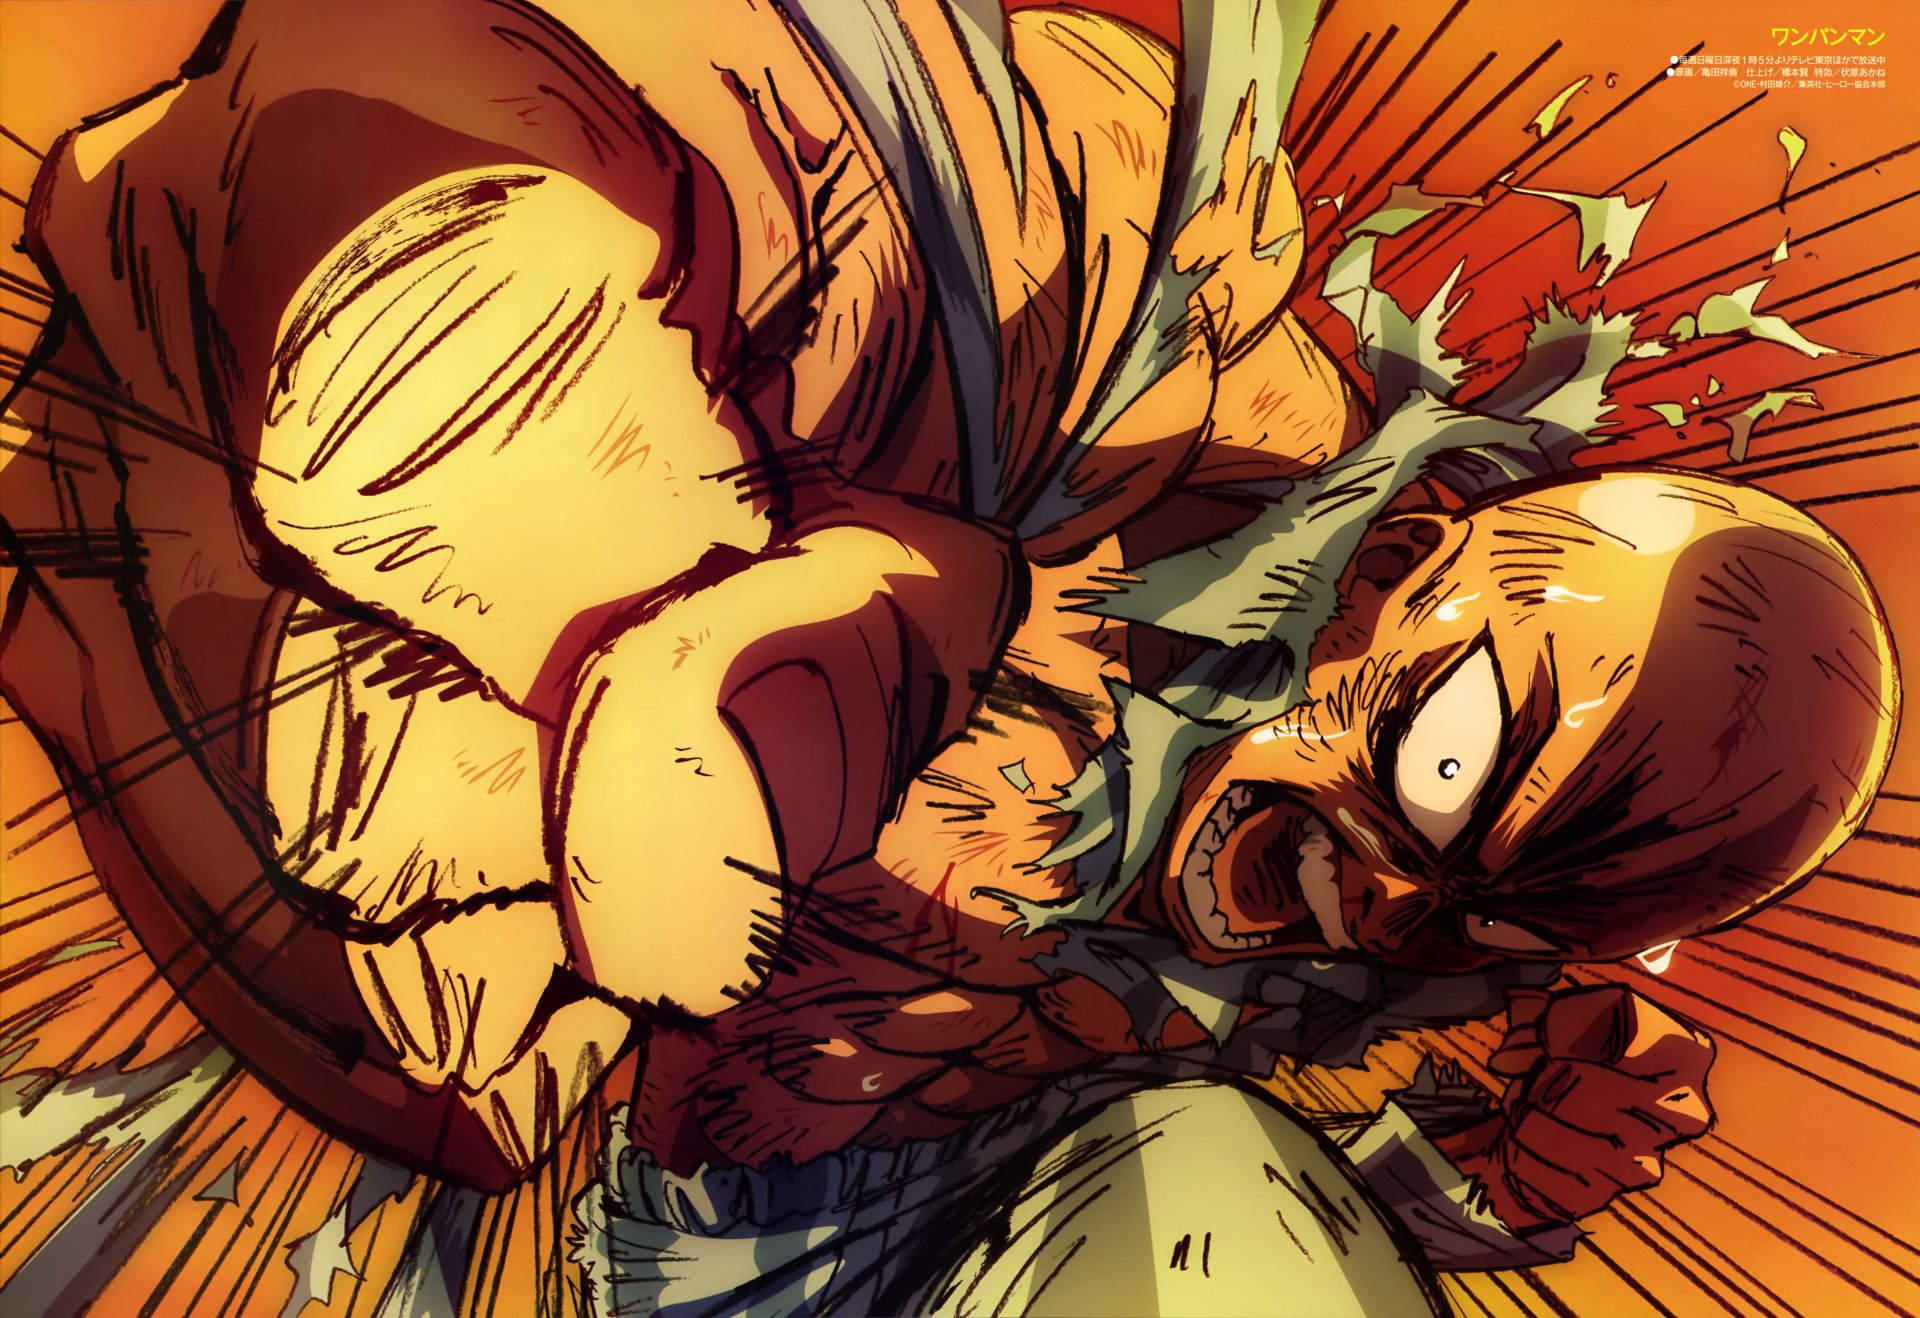 539 one punch man hd wallpapers background images - Funny one punch man wallpaper ...